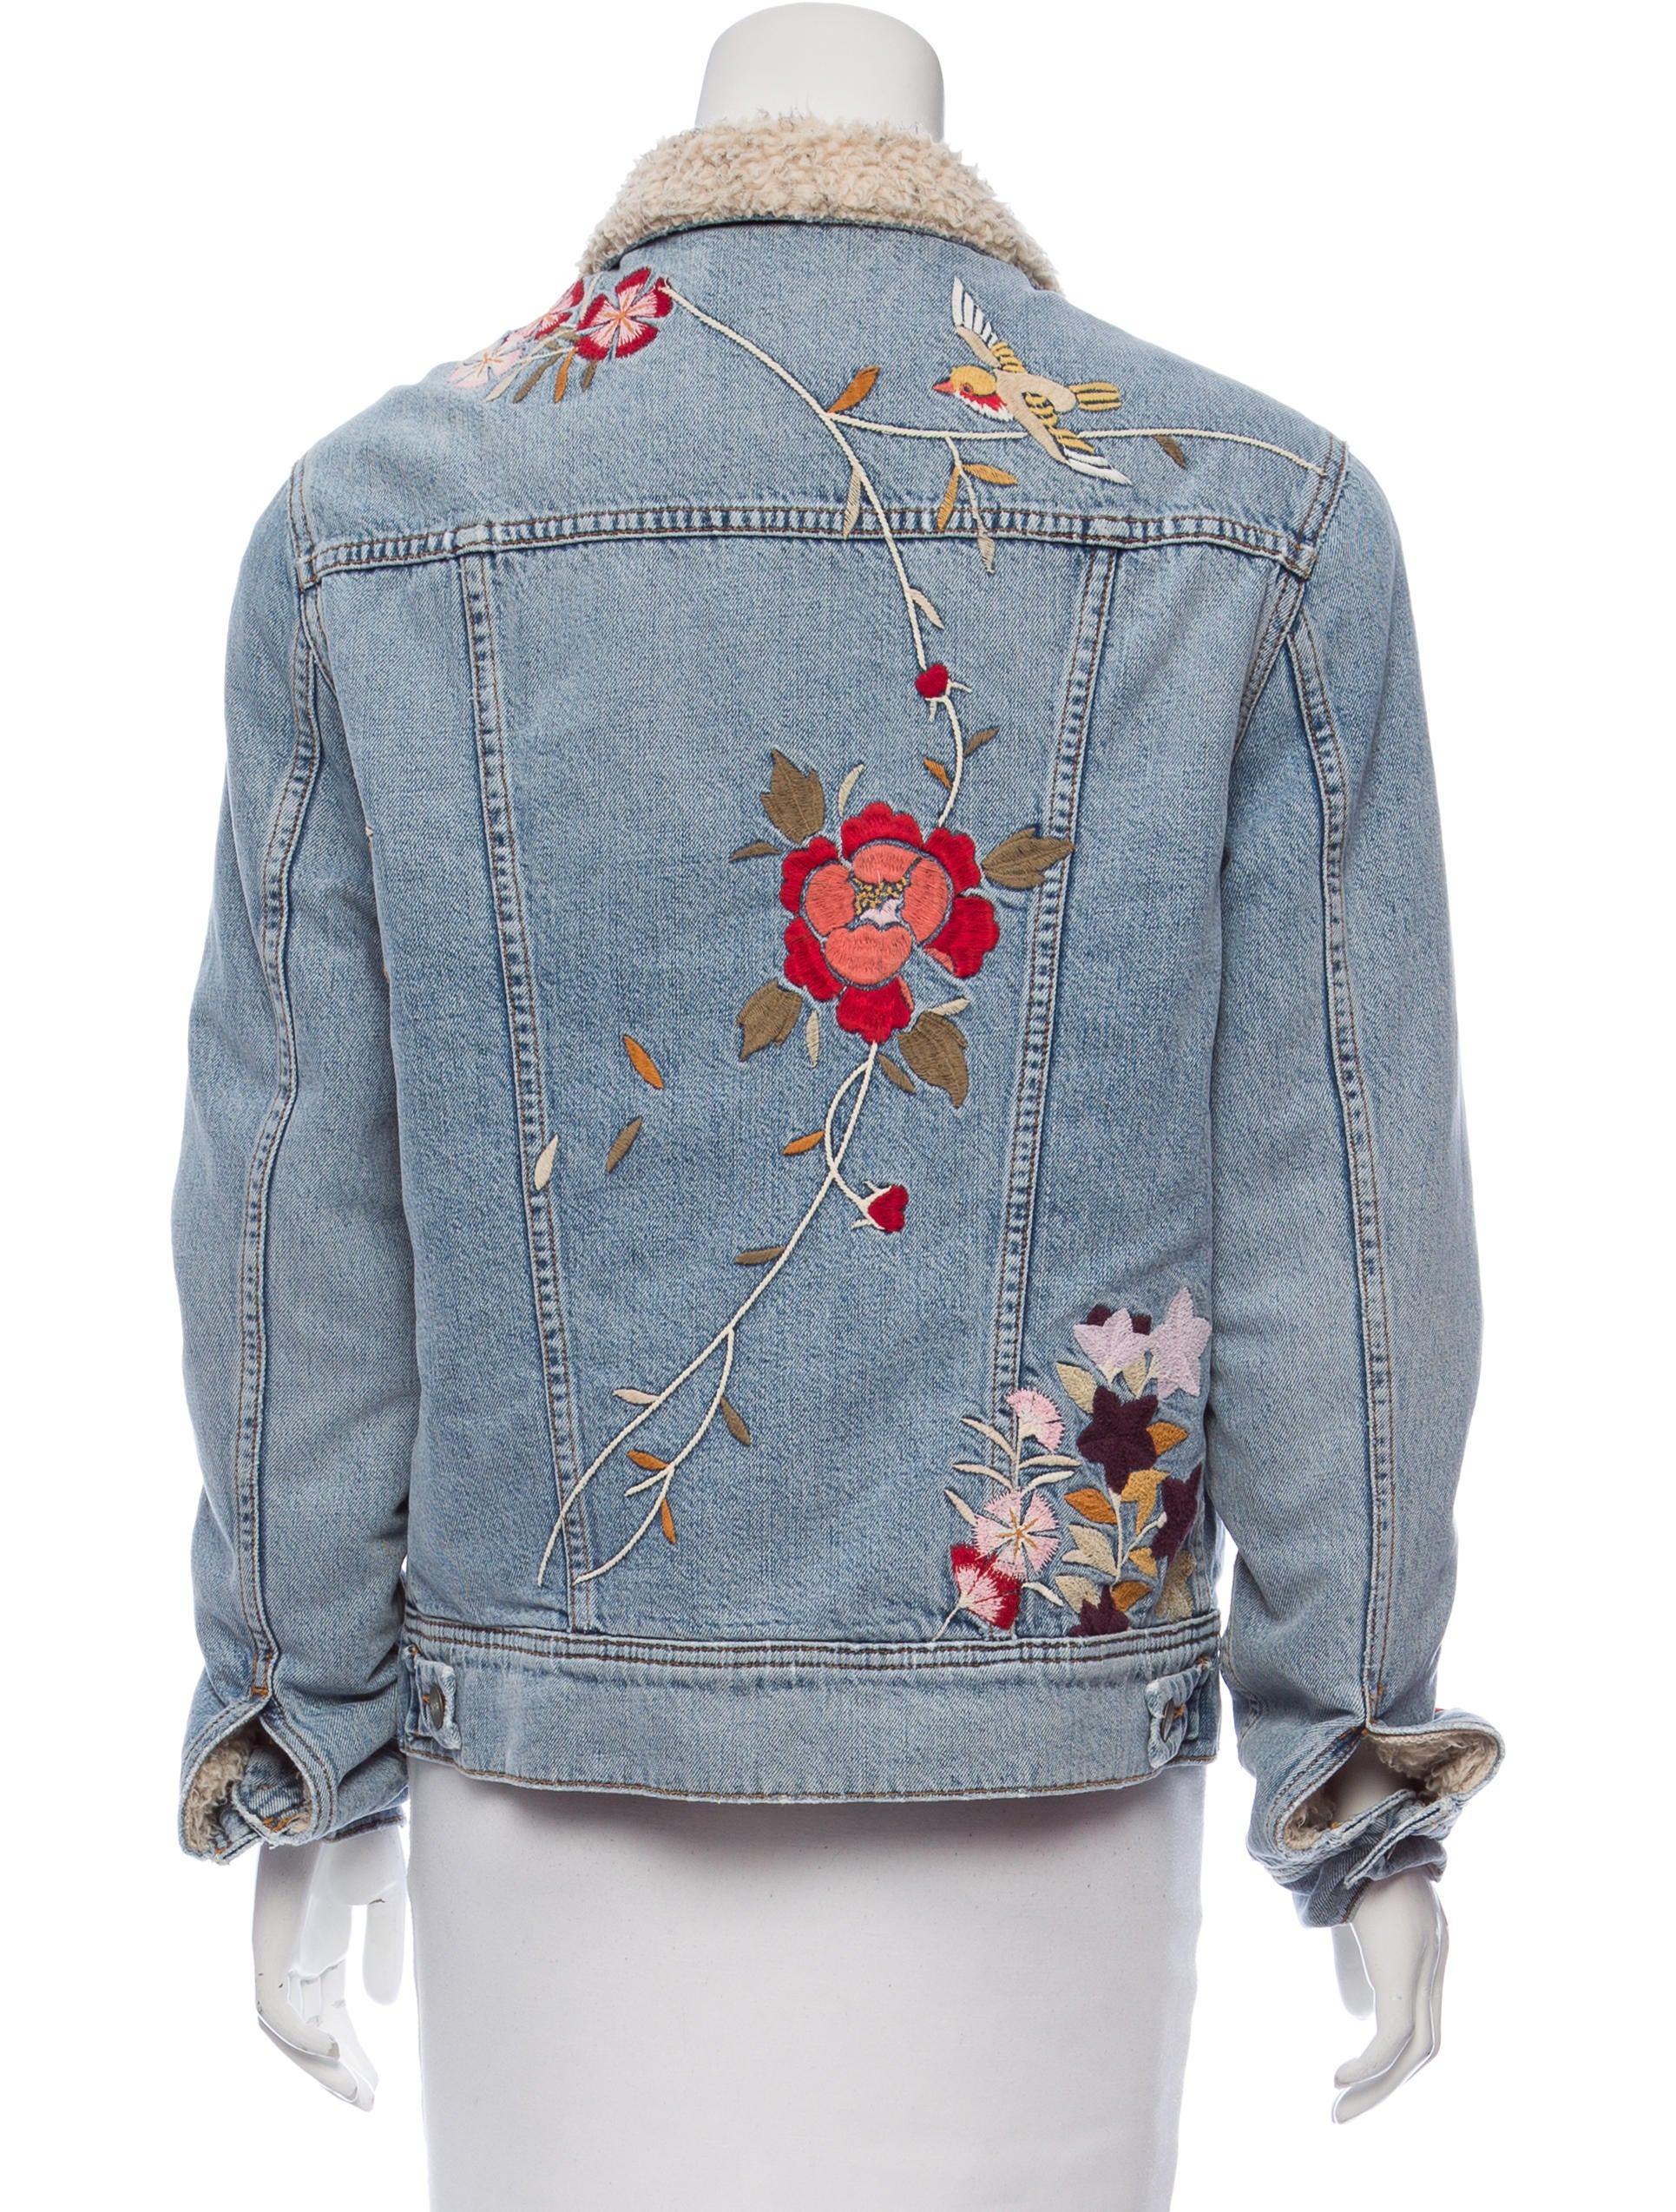 About Custom Denim Jackets. Custom denim jackets give you versatility in function and style. Offering you a diversely wide range of options that include printed custom denim jackets, faded denim jackets, plus sized custom denim jackets and embroidered custom denim jackets among many others.